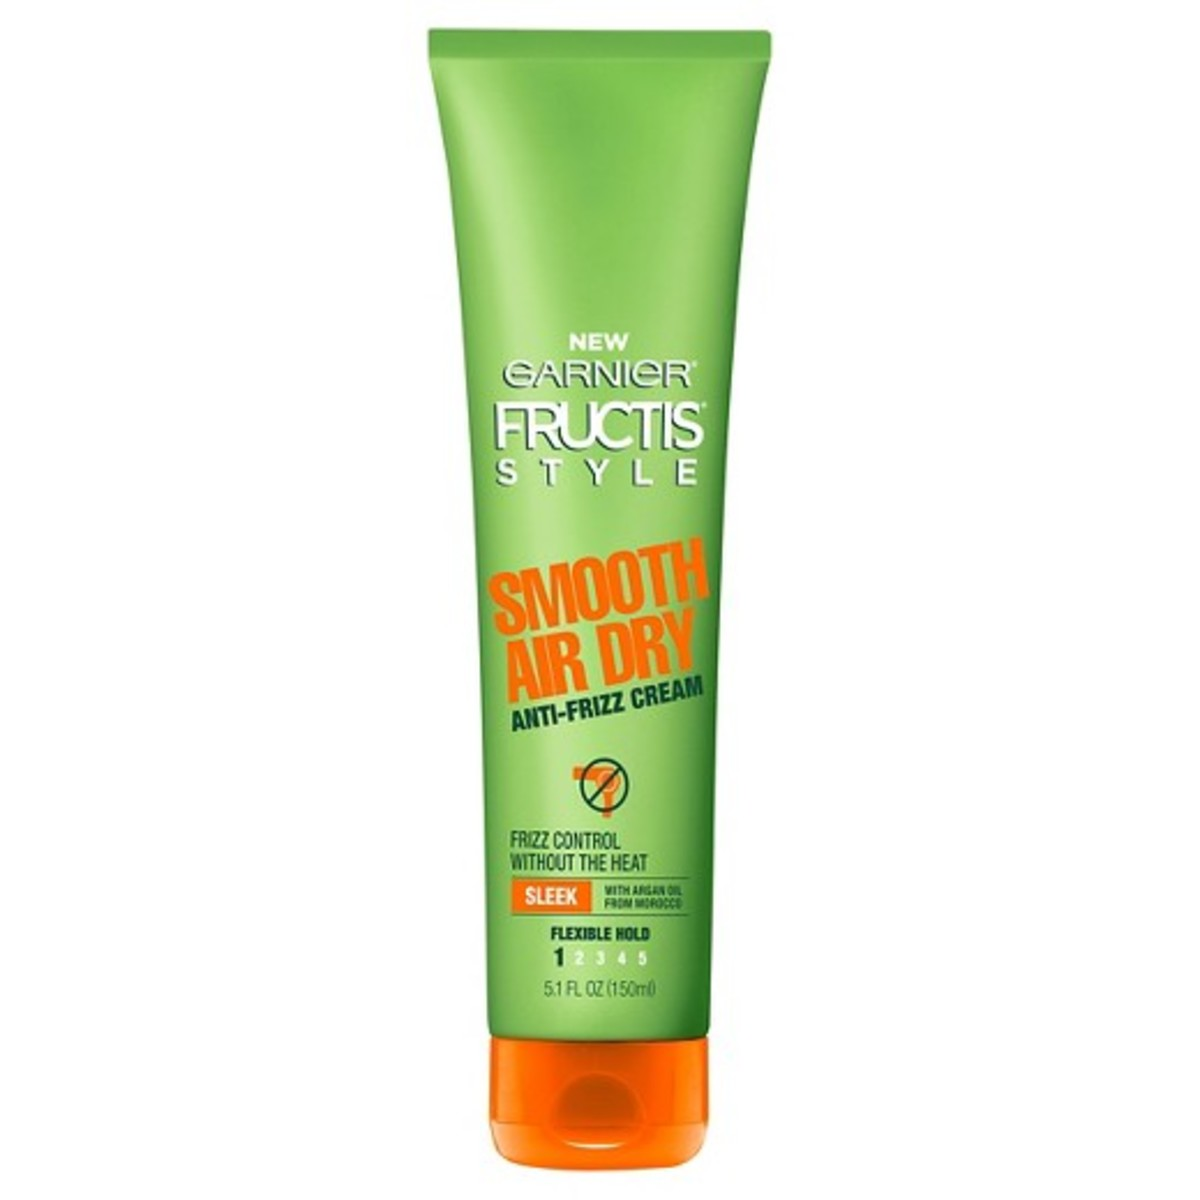 Garnier Fructis Style Smooth Air Dry Anti-Frizz Cream, $3.42, available at Target.